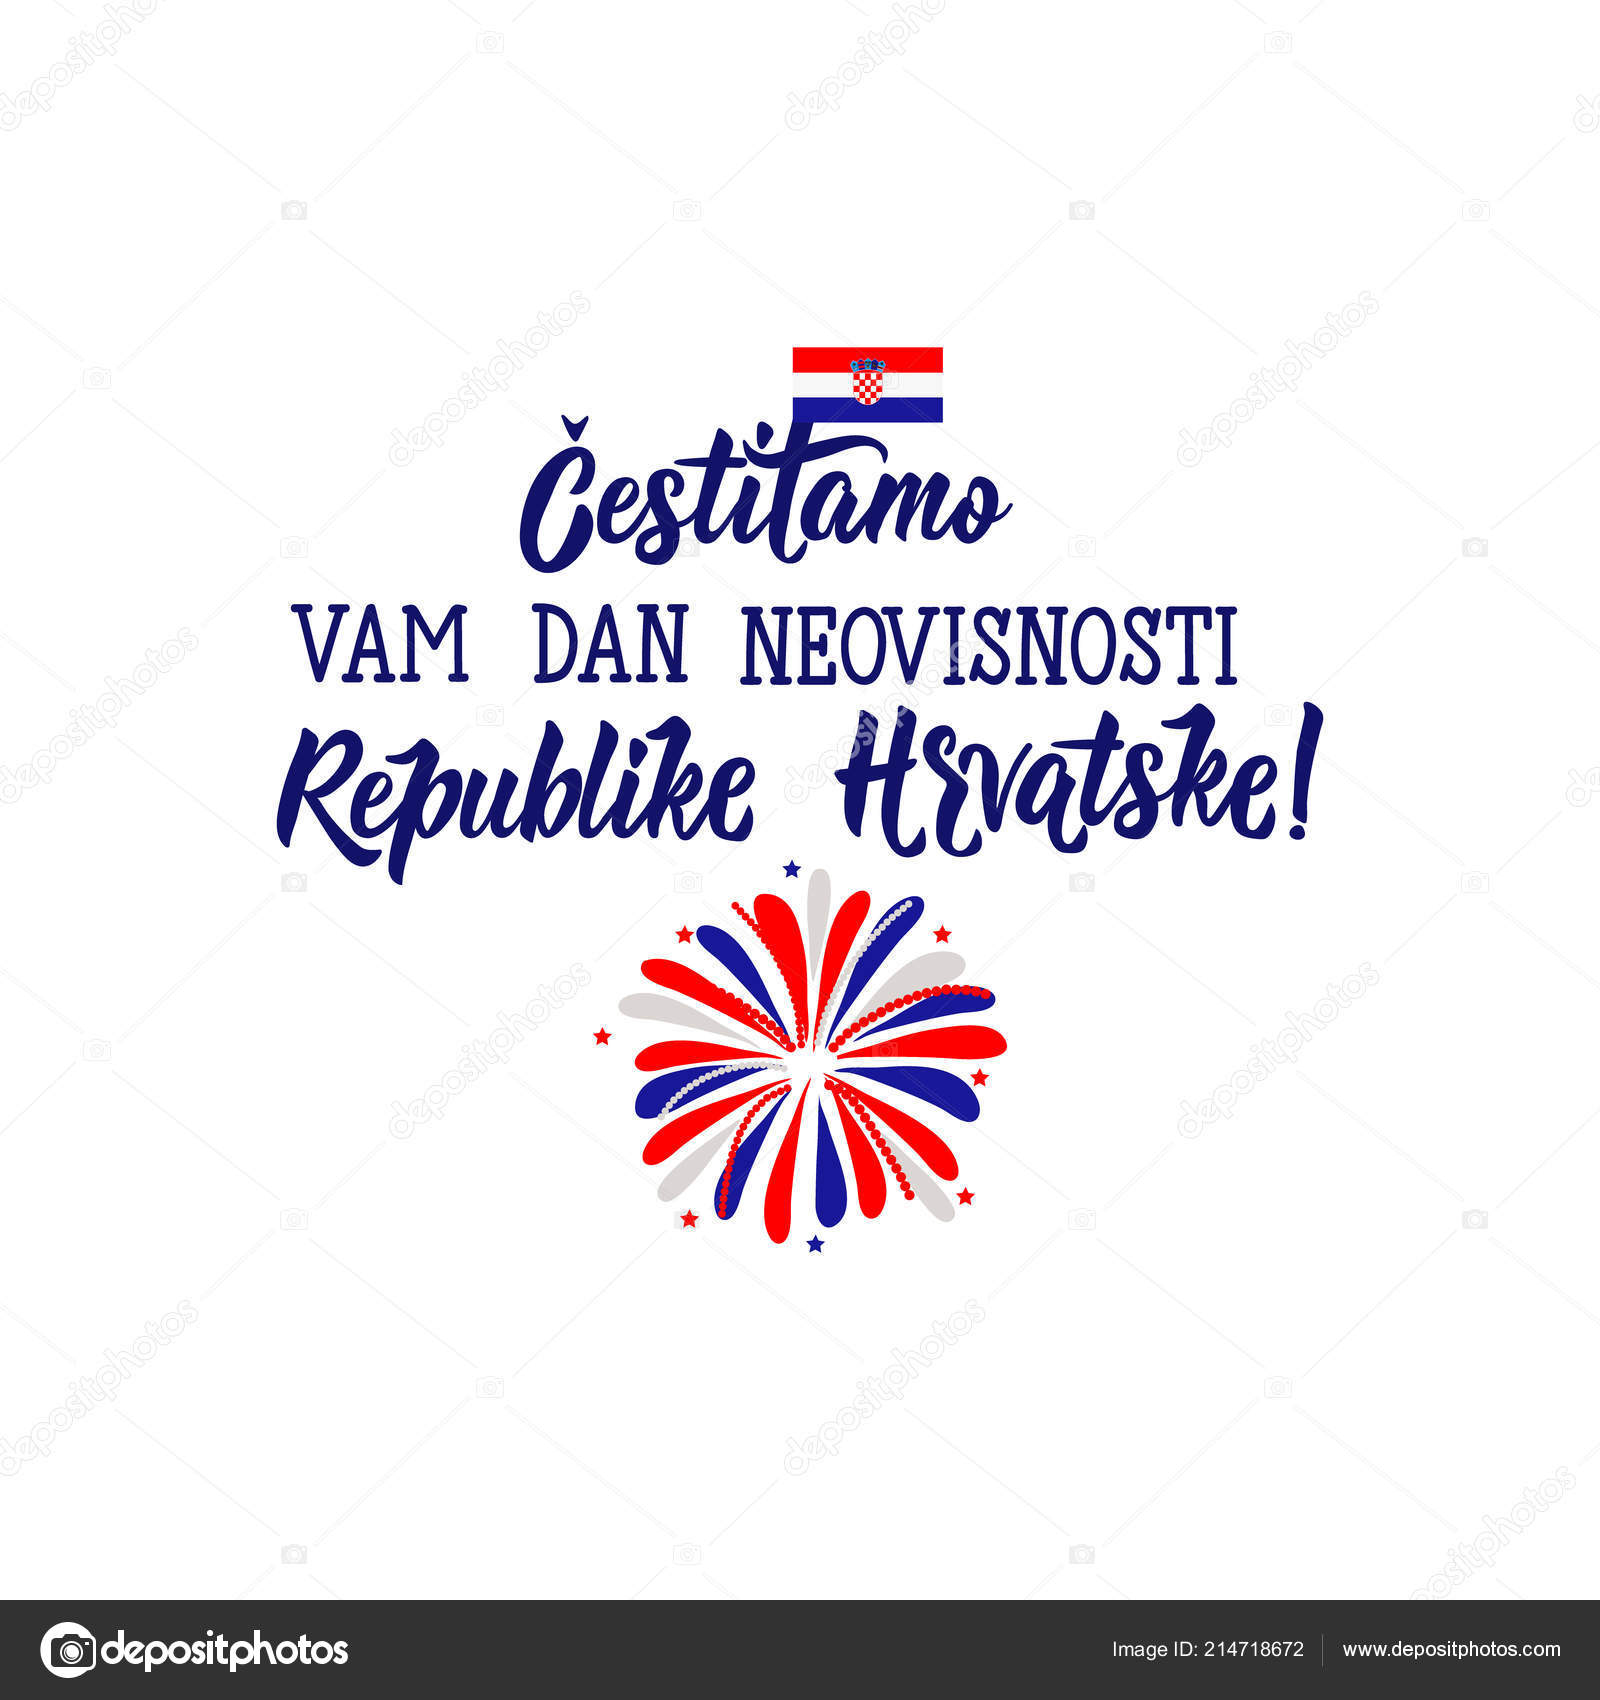 Croatie Carte Fete.Carte Voeux Fete Independance Croate Lettrage Texte Croate Octobre